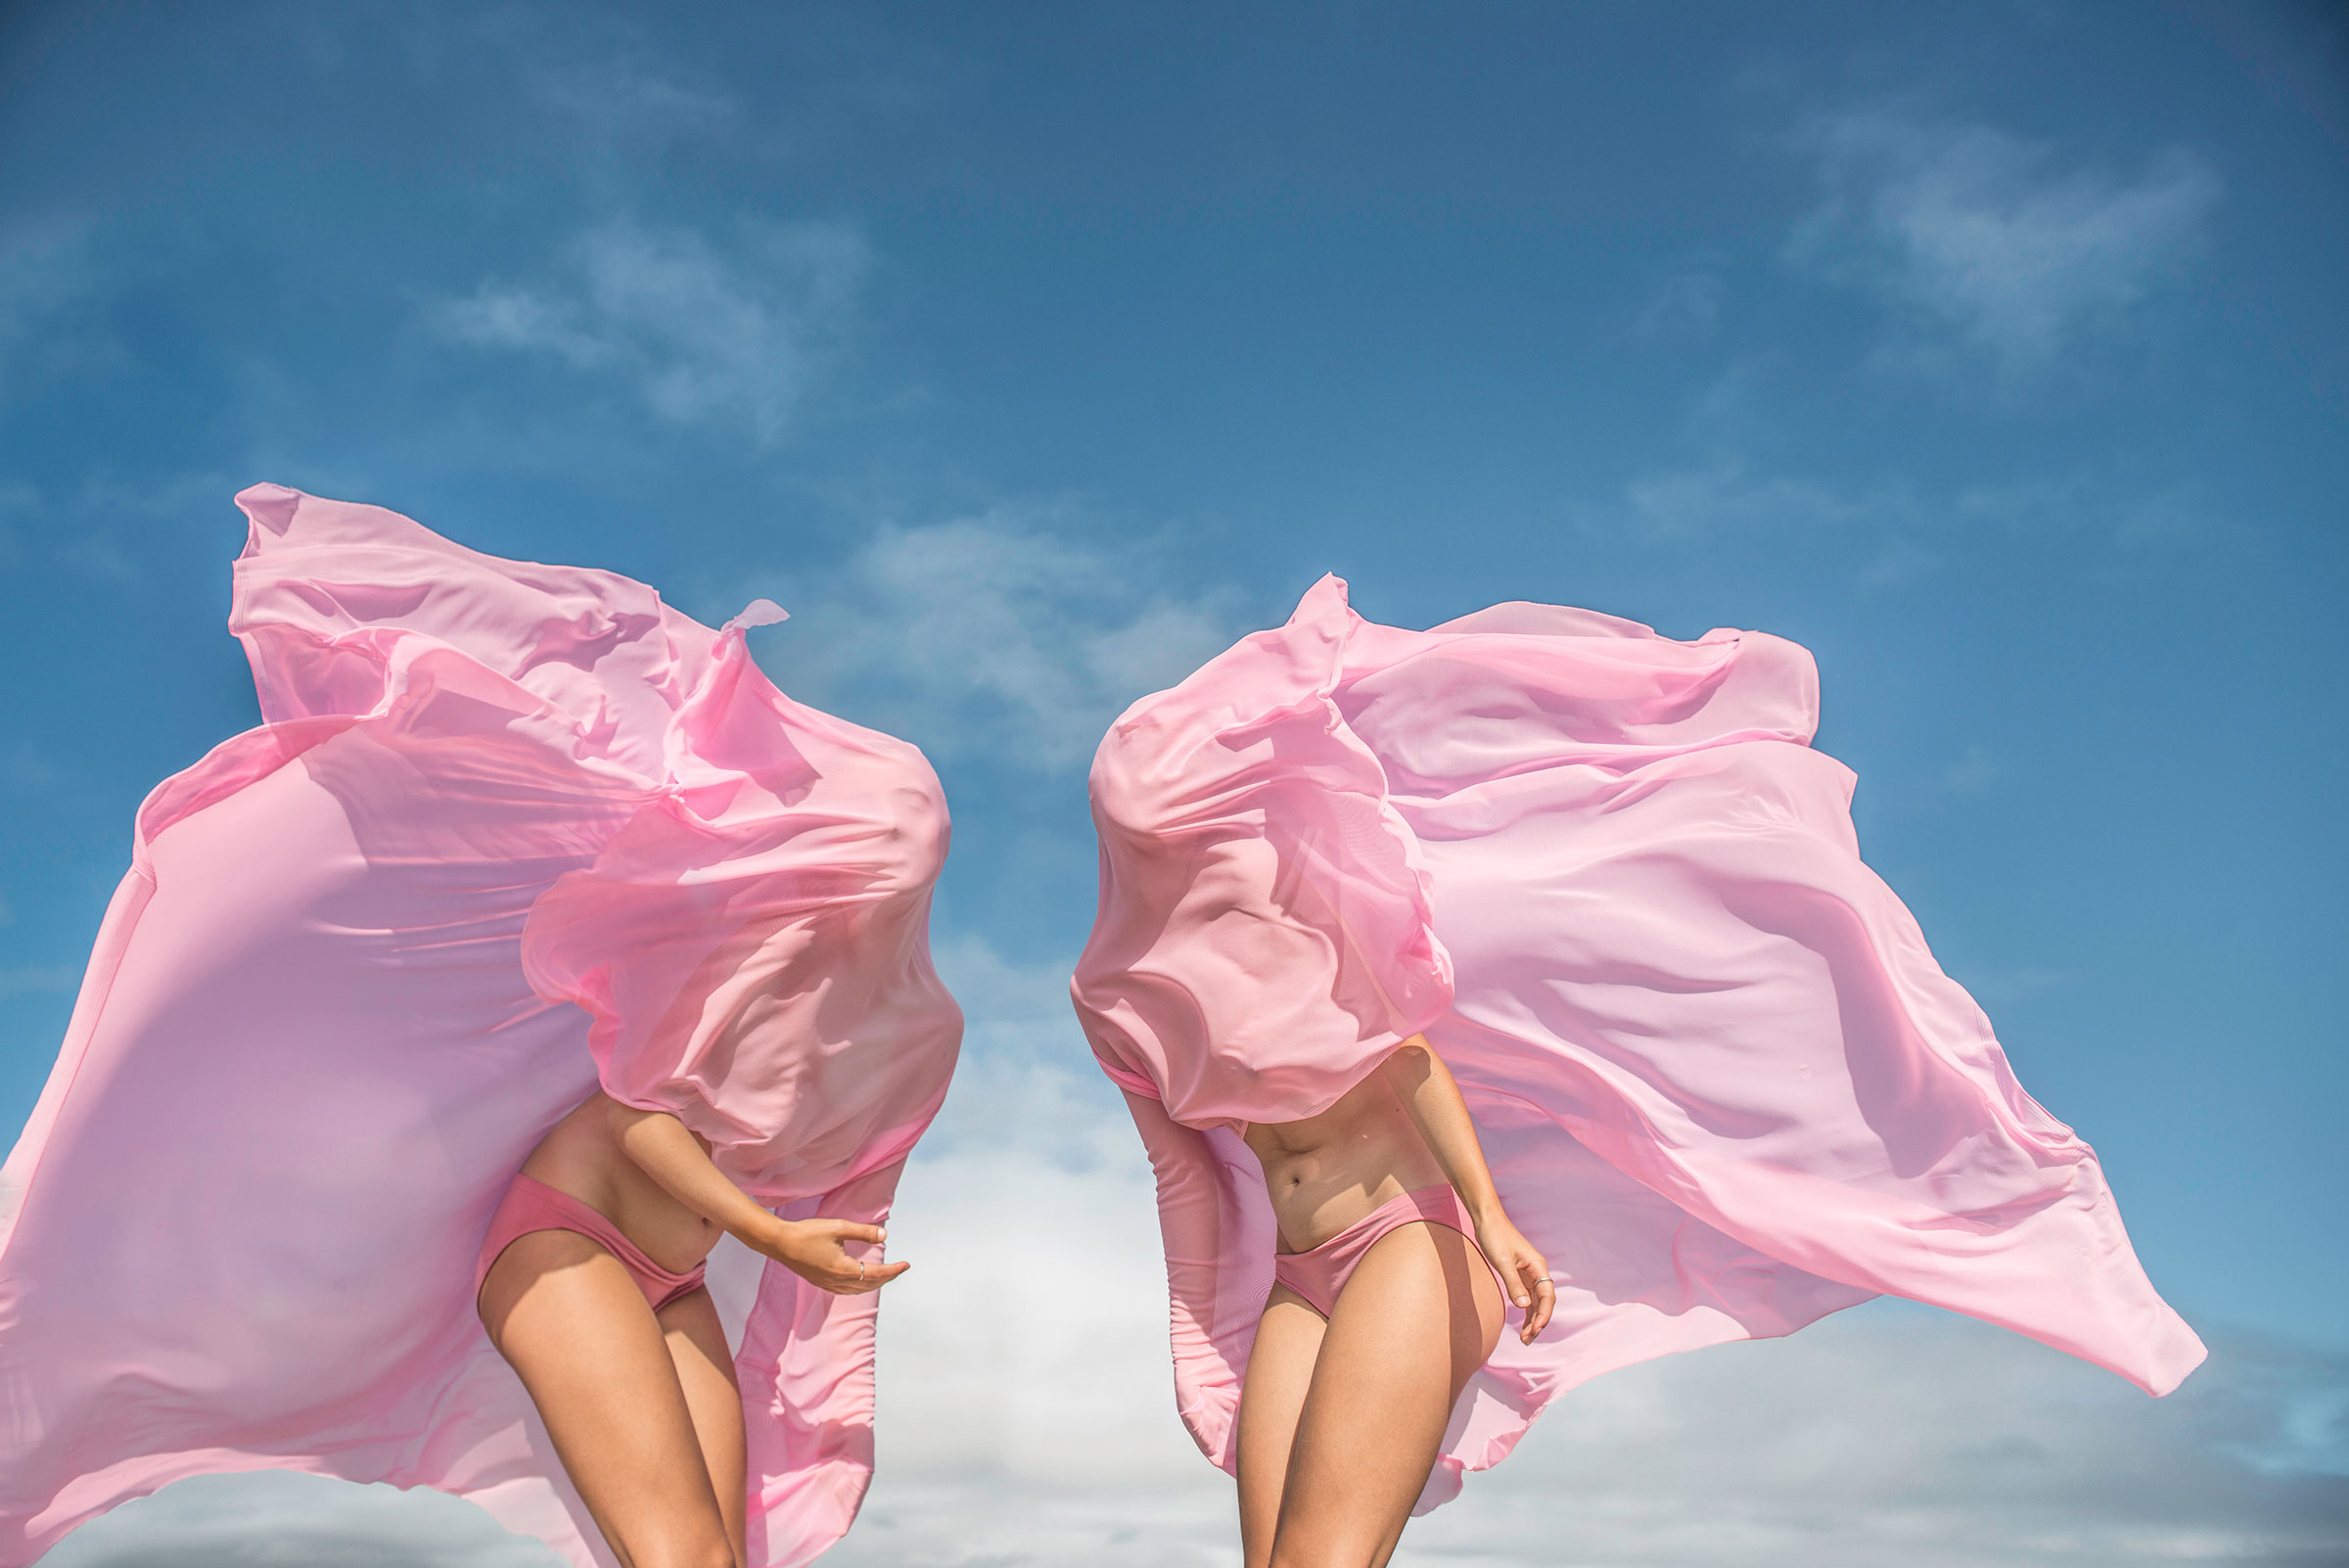 Honey Long & Prue Stent,  Wind Form,  2014, archival pigment print, 159 x 106 cm.